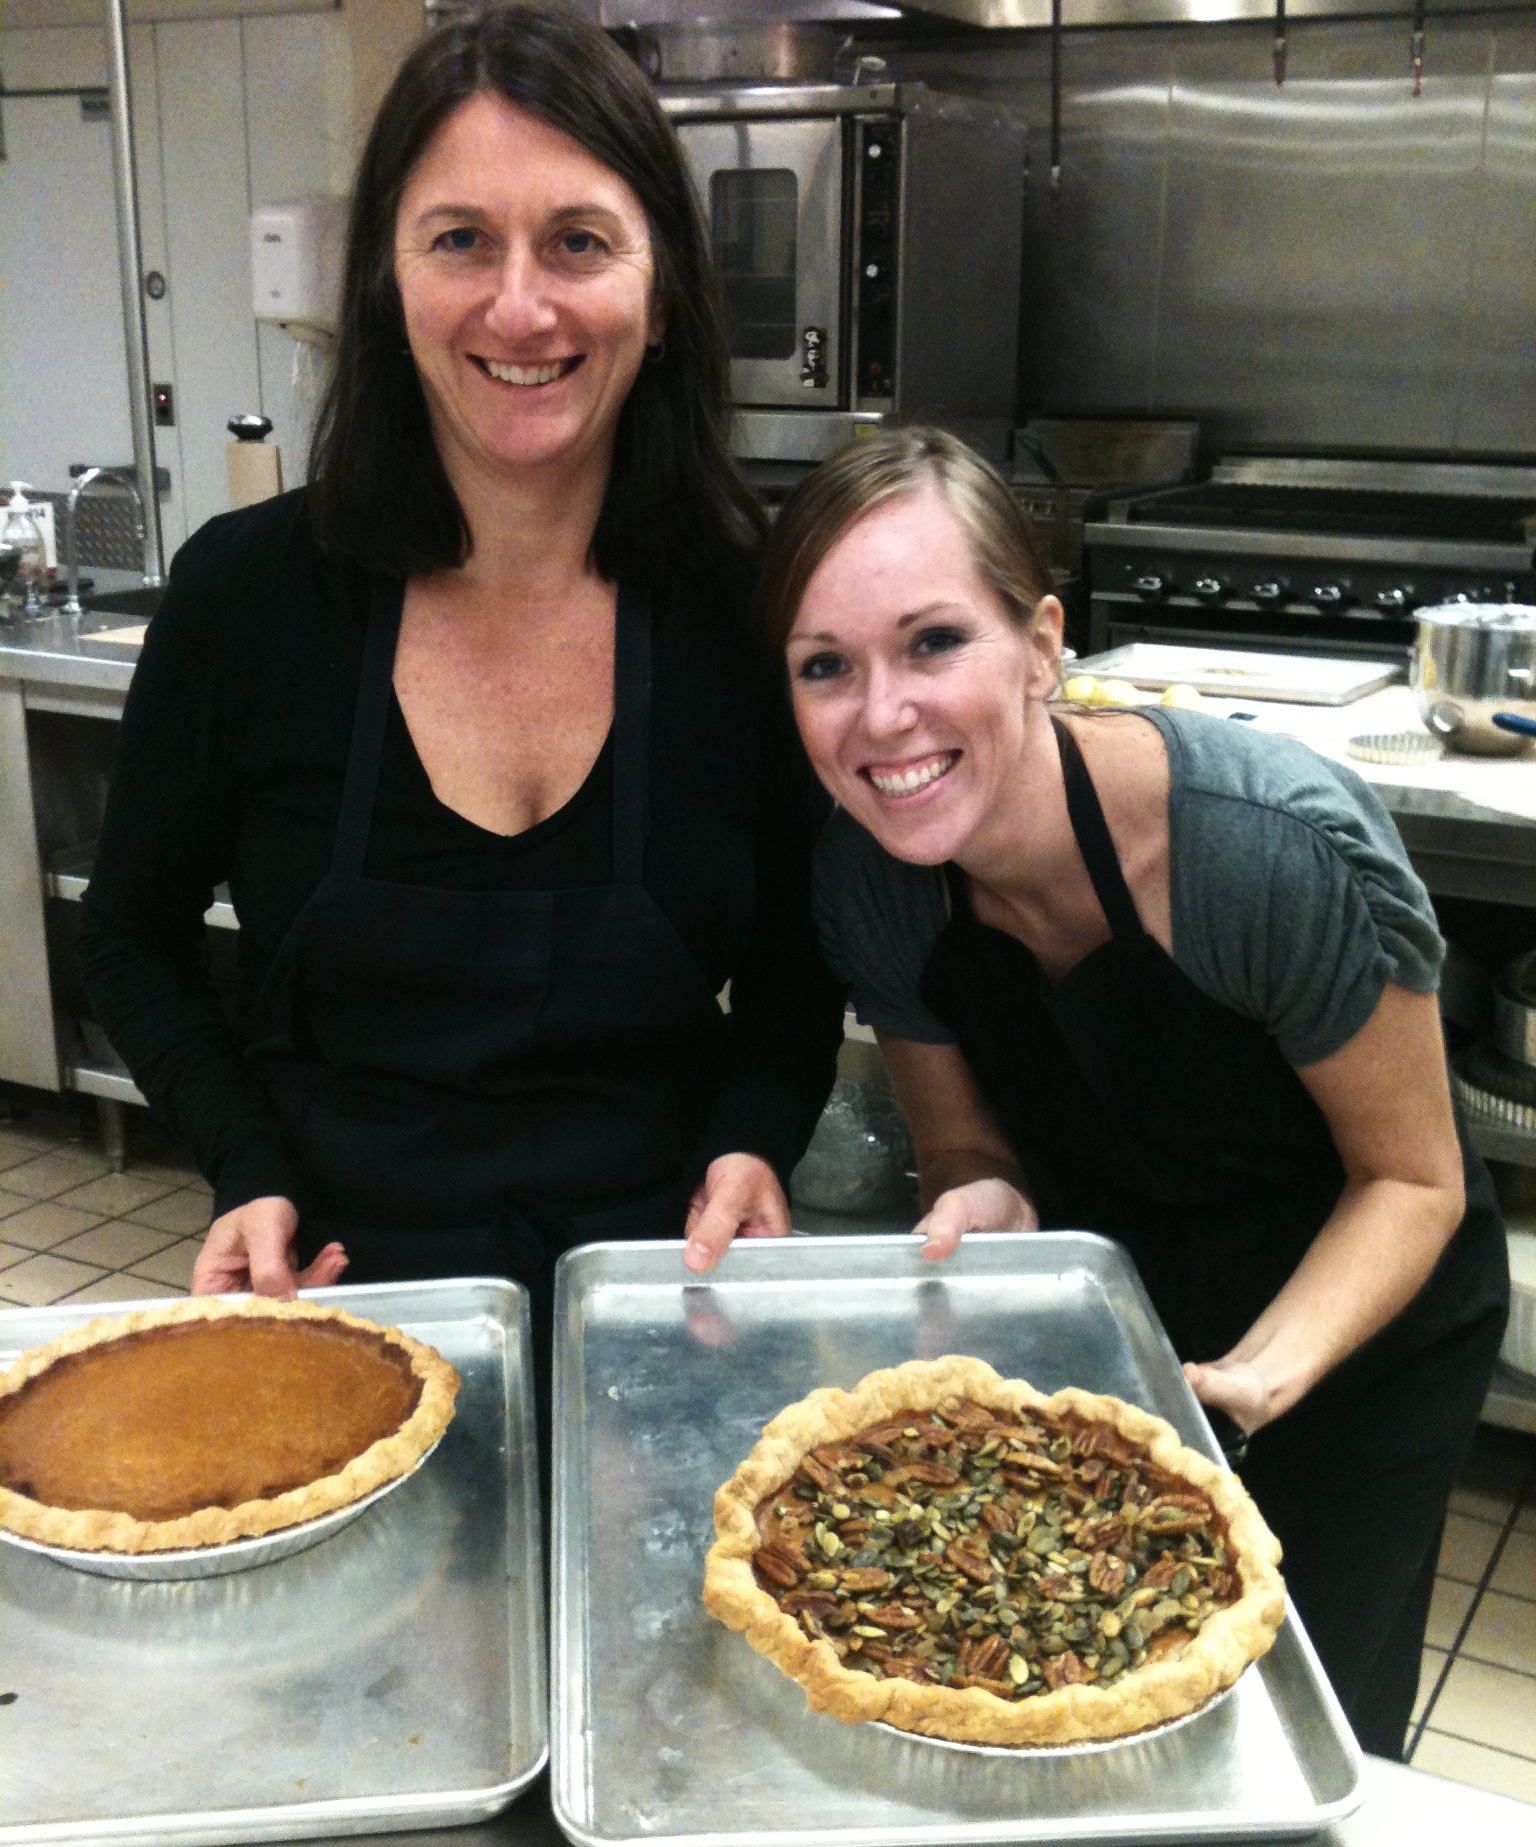 girls with pies.JPG